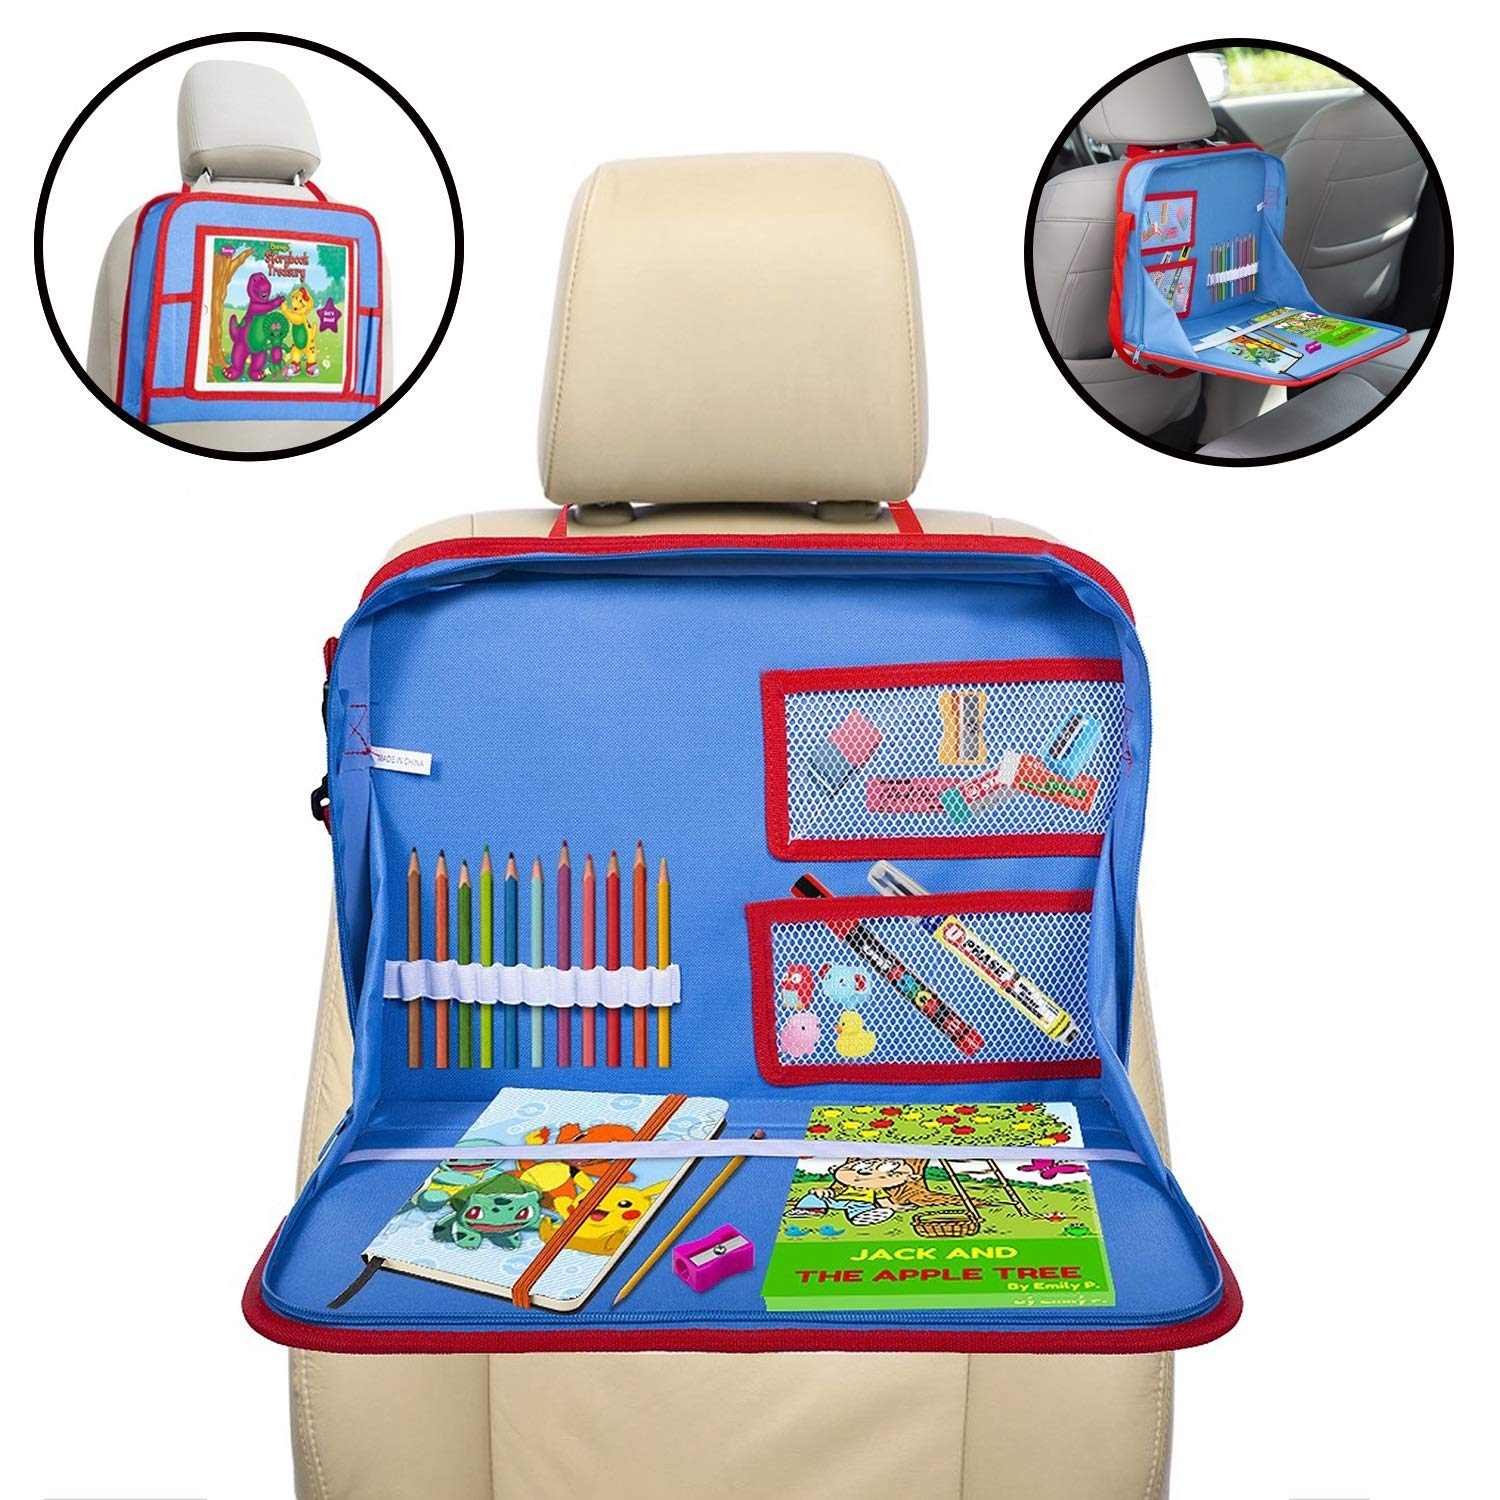 lebogner Kids Car Seat Activity Tray, Backseat iPad Or Tablet Holder, Carry Bag with Storage Organizer Mesh Pockets and Shoulder Strap, On The Go Travel Lap Desk to Play, Eat, Or A Writing Surface by lebogner